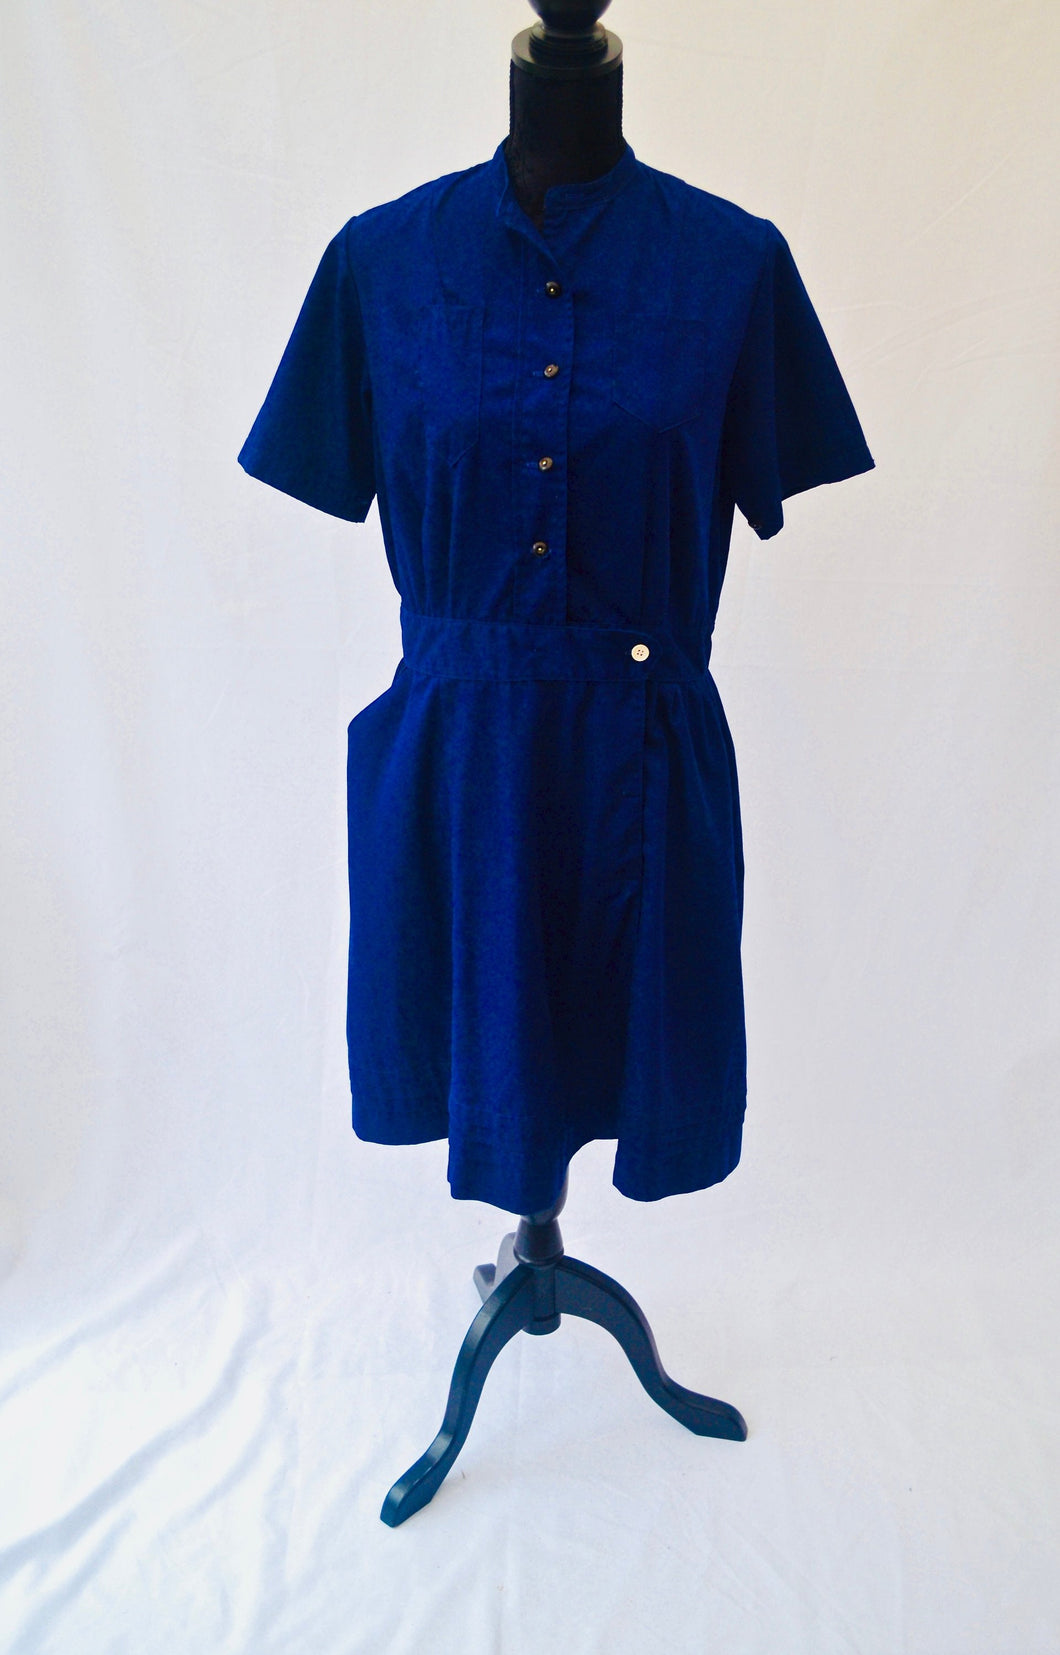 1960s Navy blue dress | Dress with pockets | Land girl style dress | Est UK size 12/14